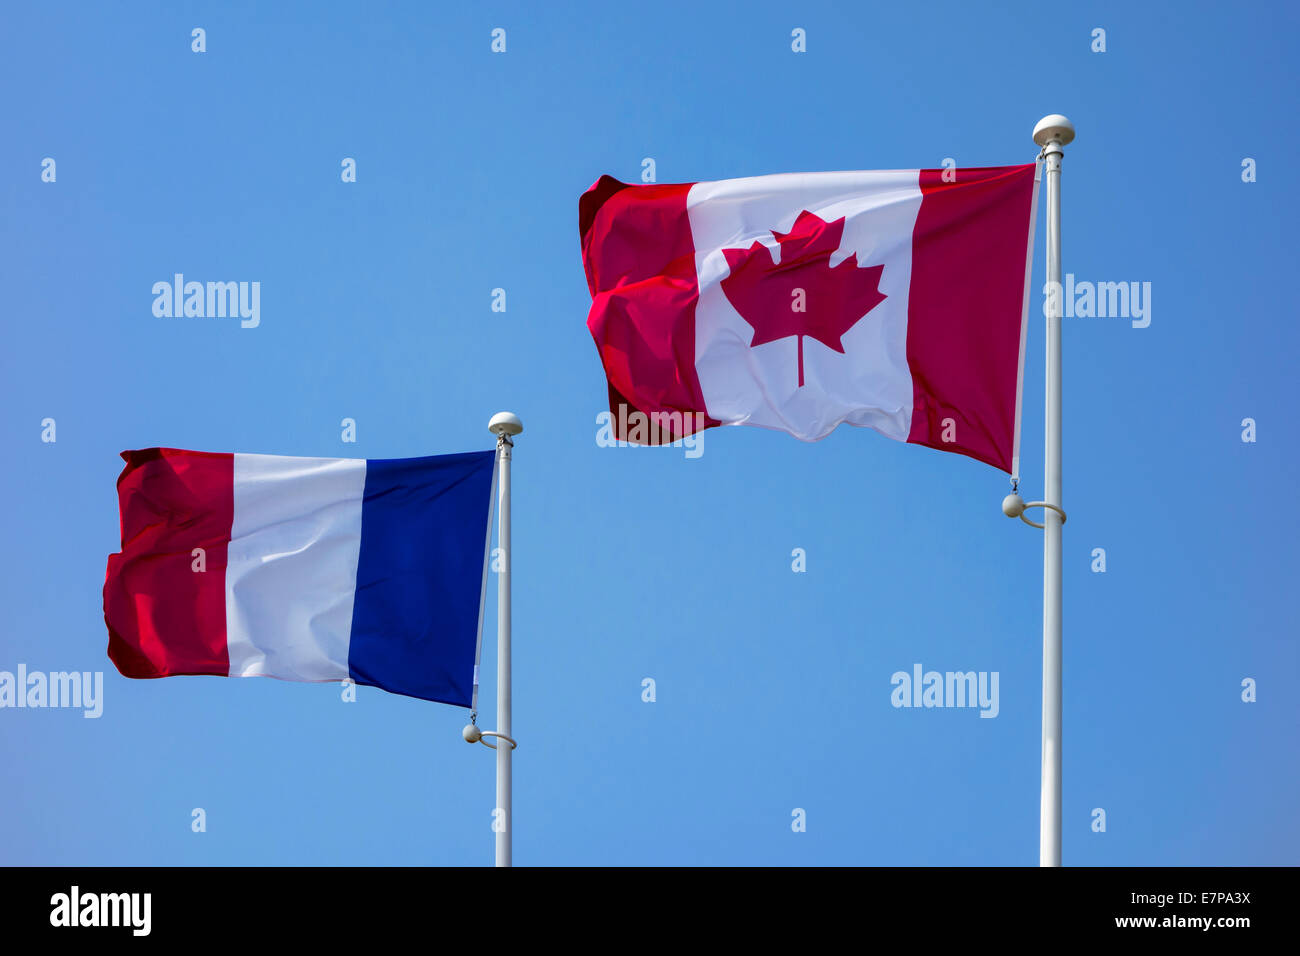 French Canada Flags Stock Photos & French Canada Flags Stock ...